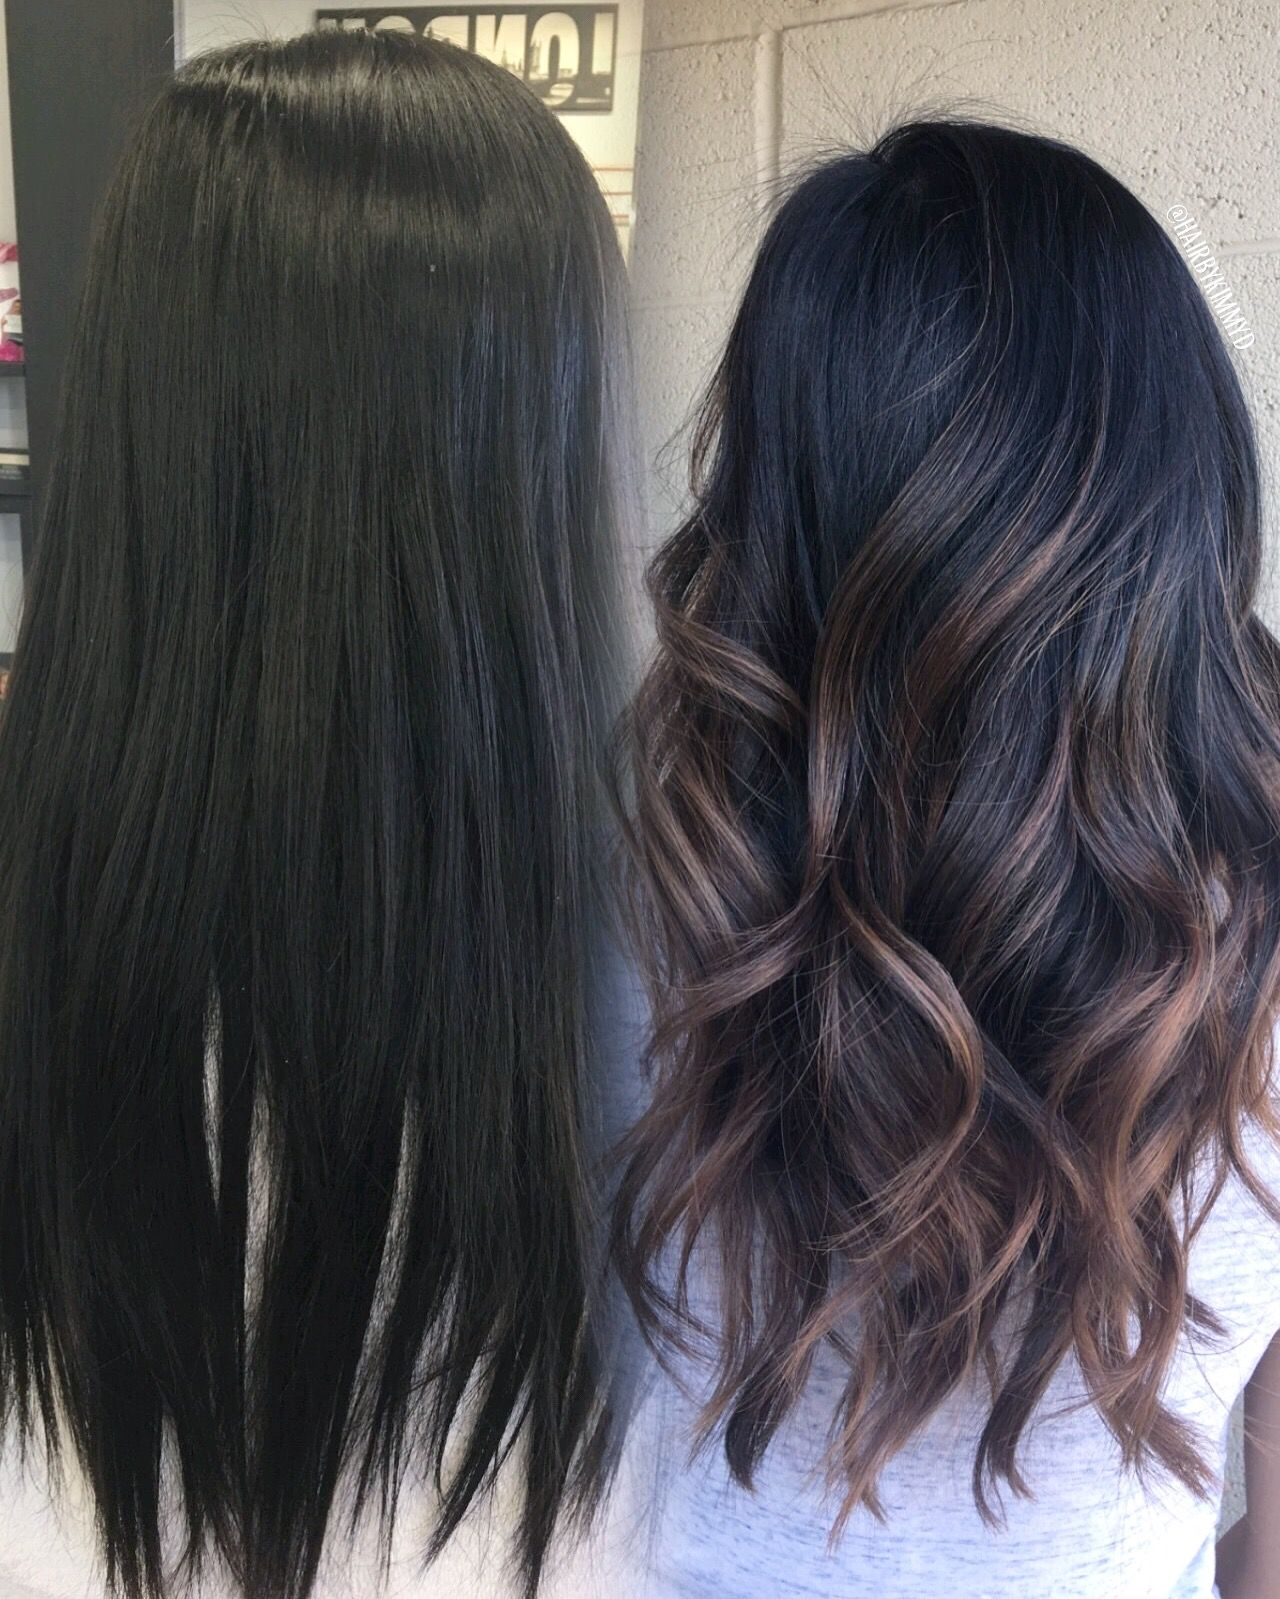 Good Color For My Mom Fall Hair Color For Brunettes Hair Styles Hair Color Balayage